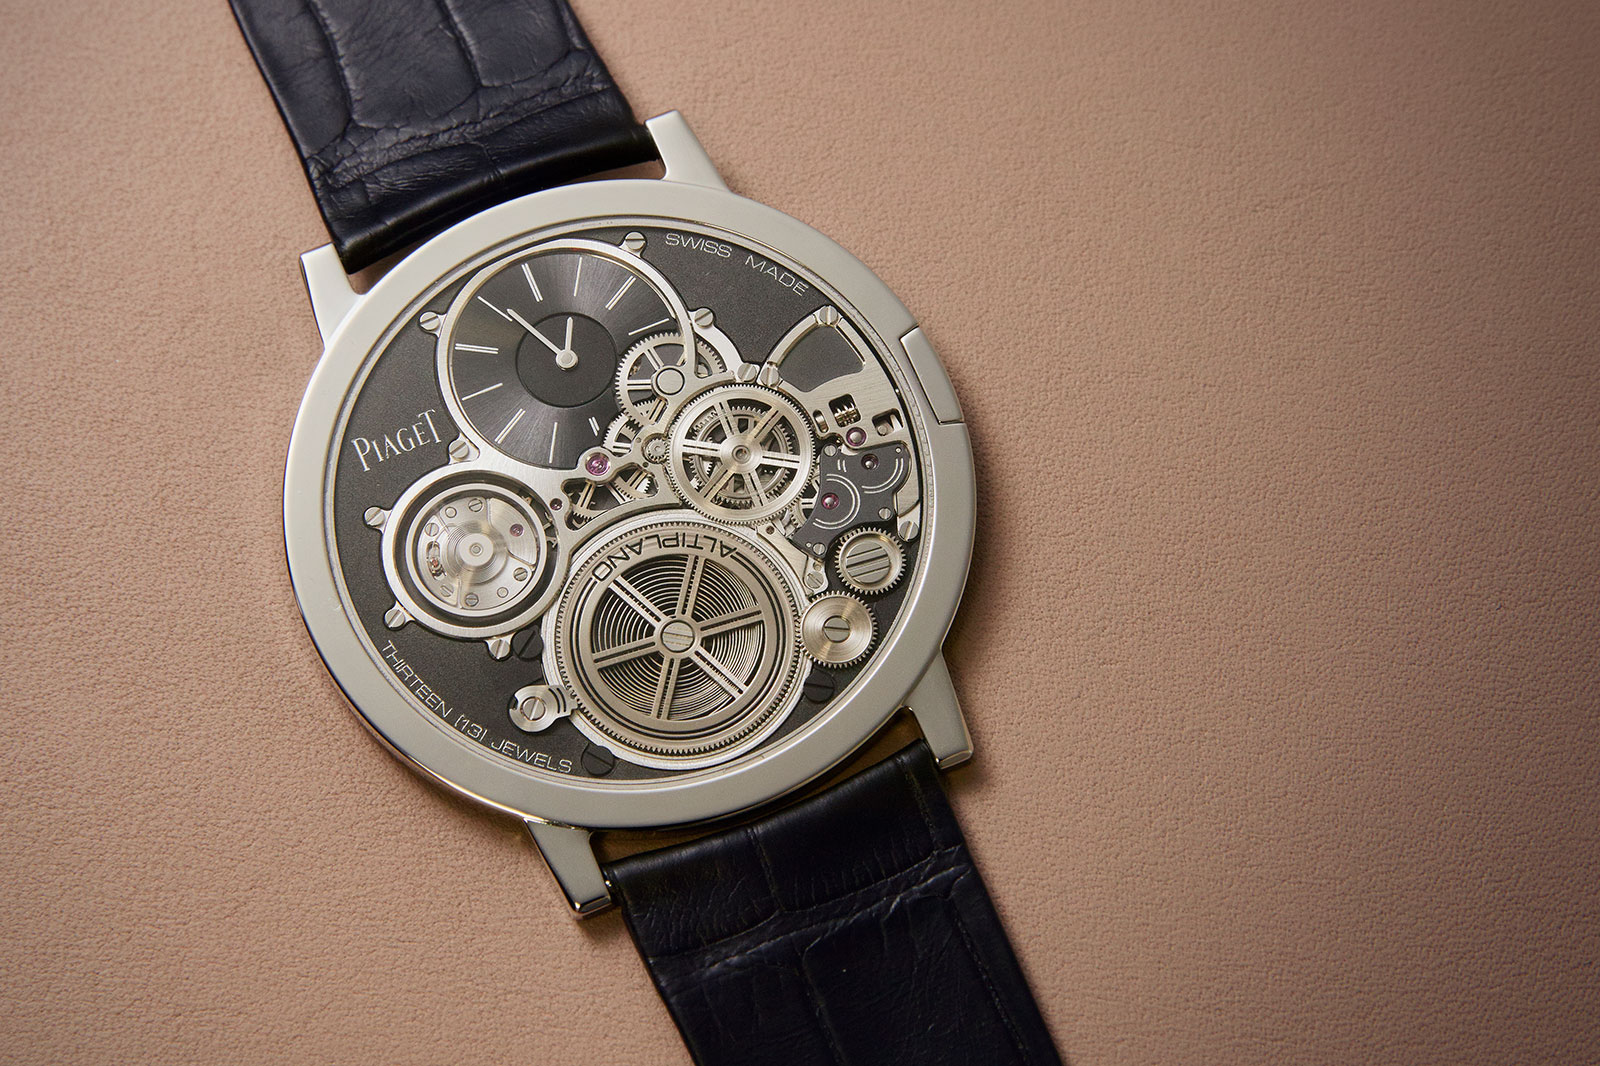 Piaget Altiplano Ultimate Concept watch 1